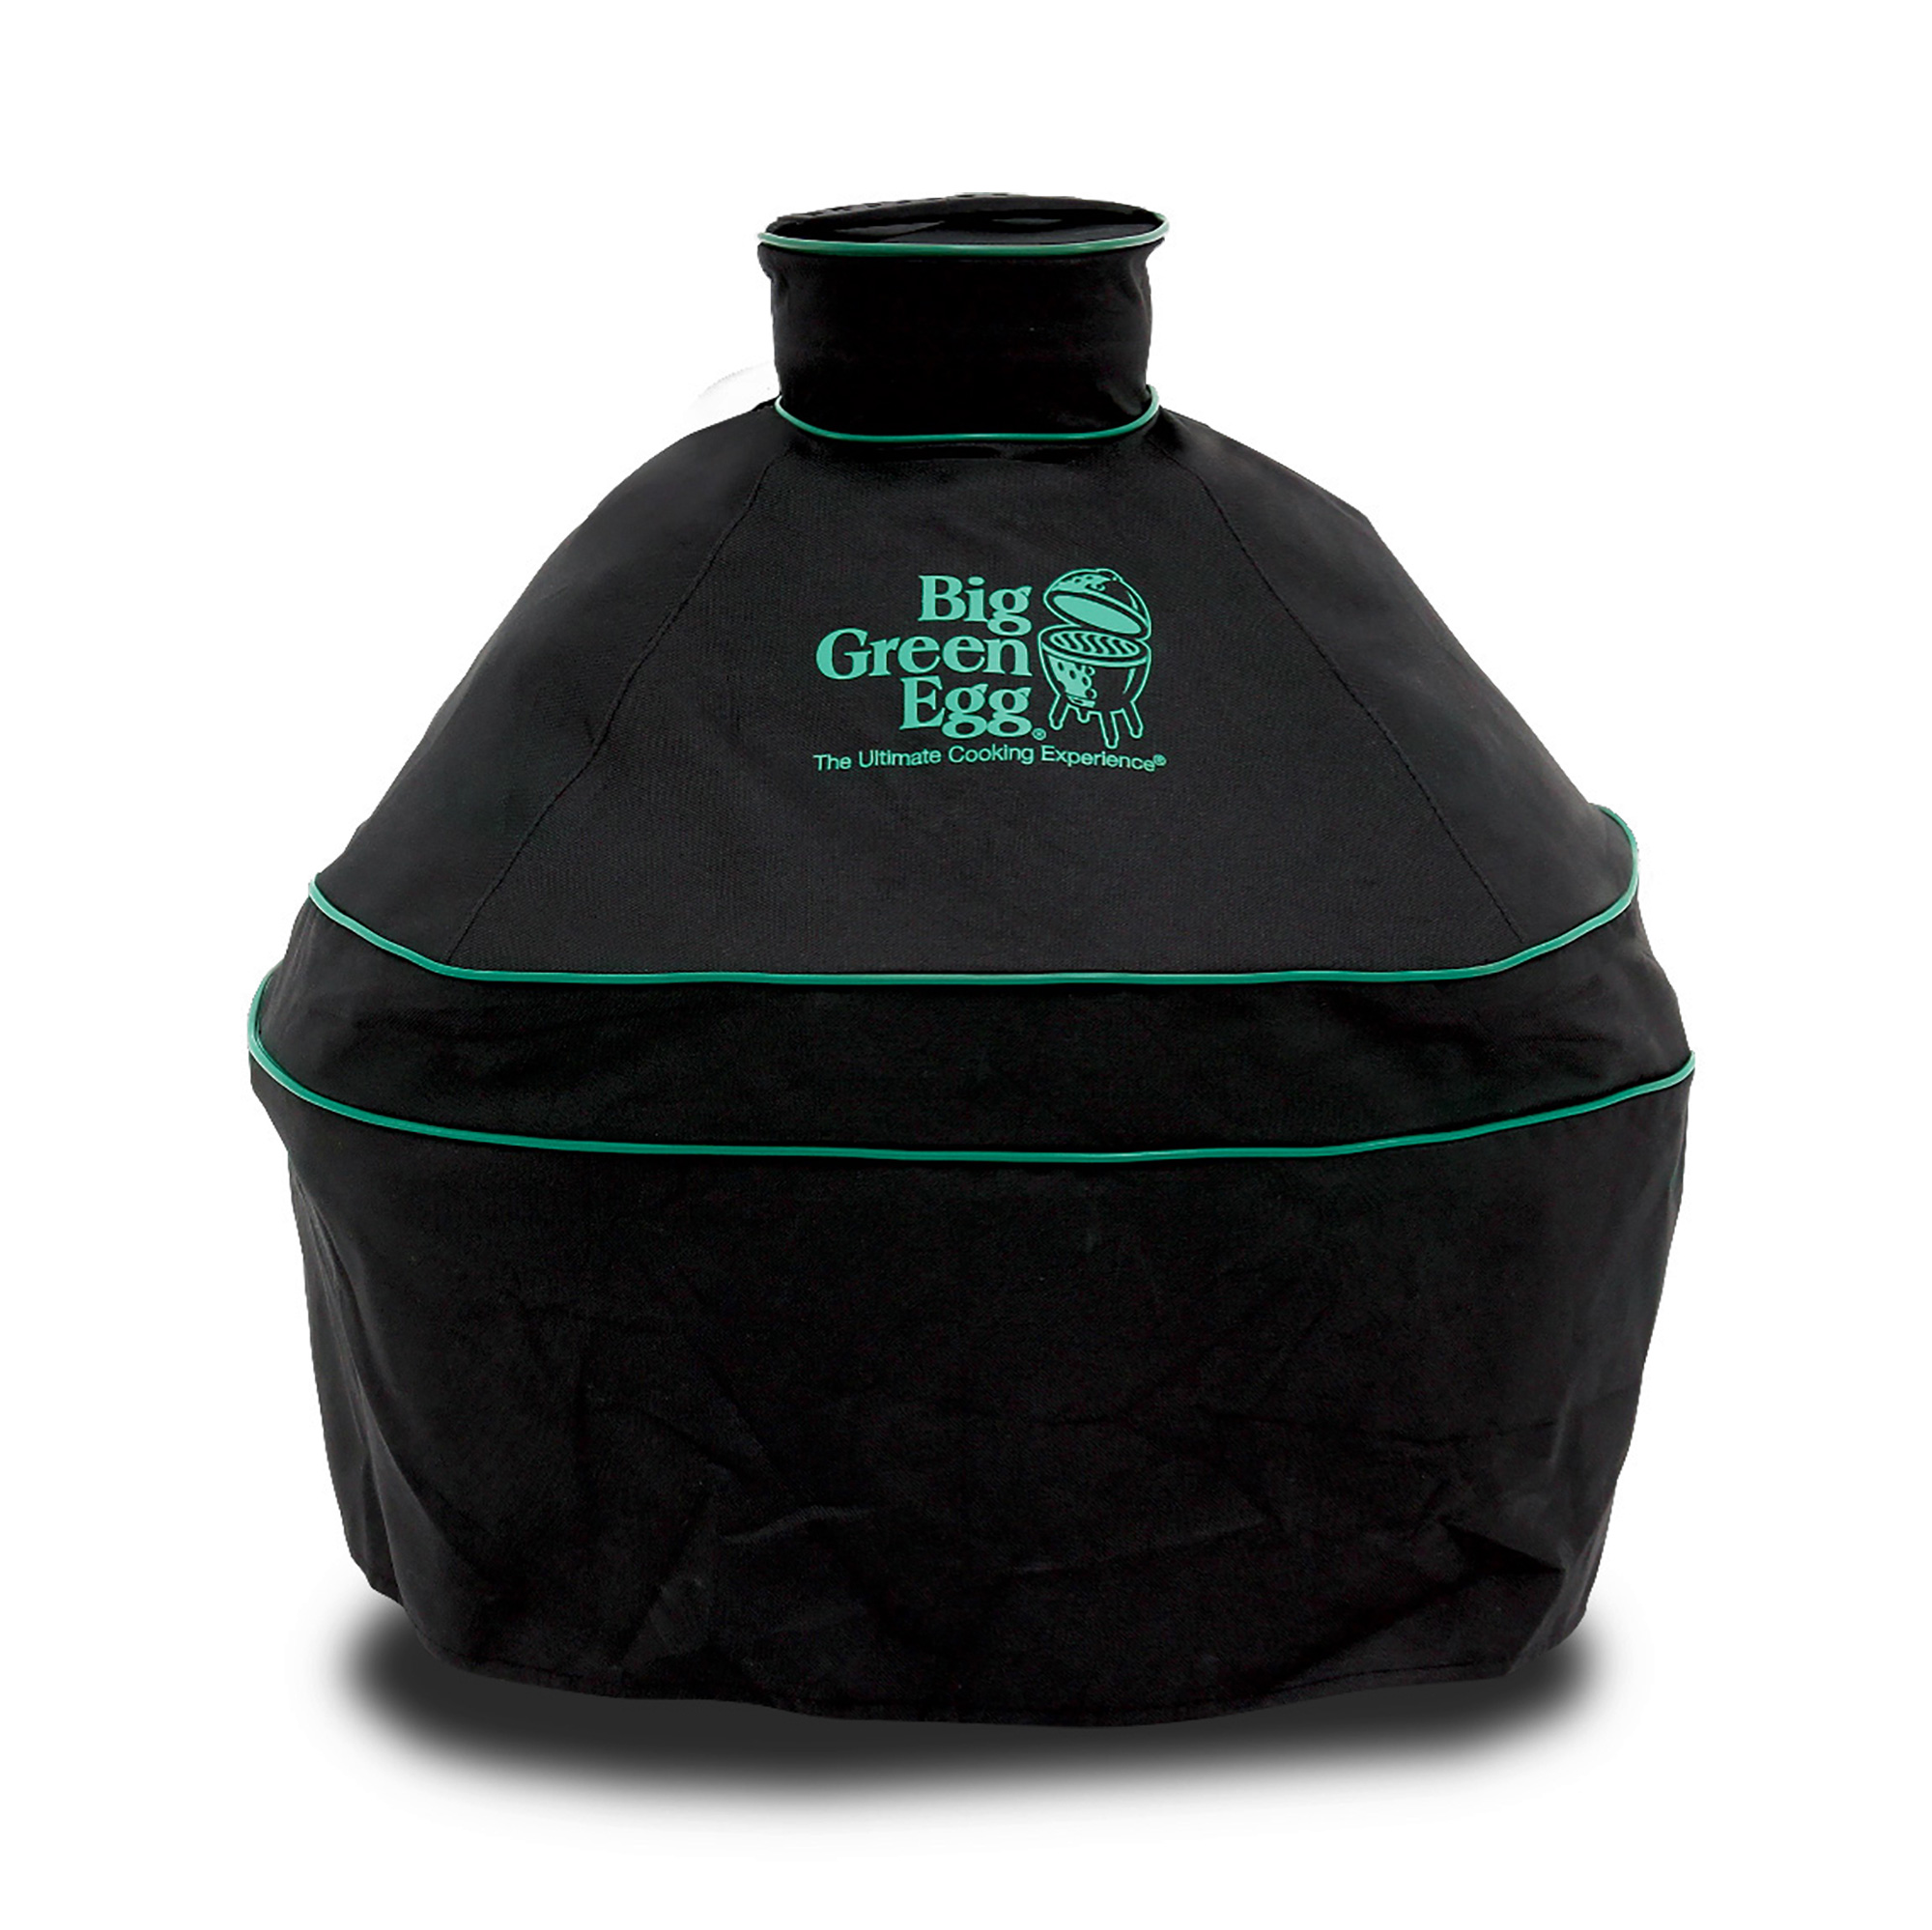 Outdoor Küche Mit Green Egg Abdeckhut Large Online Shop Big Green Egg Schweiz